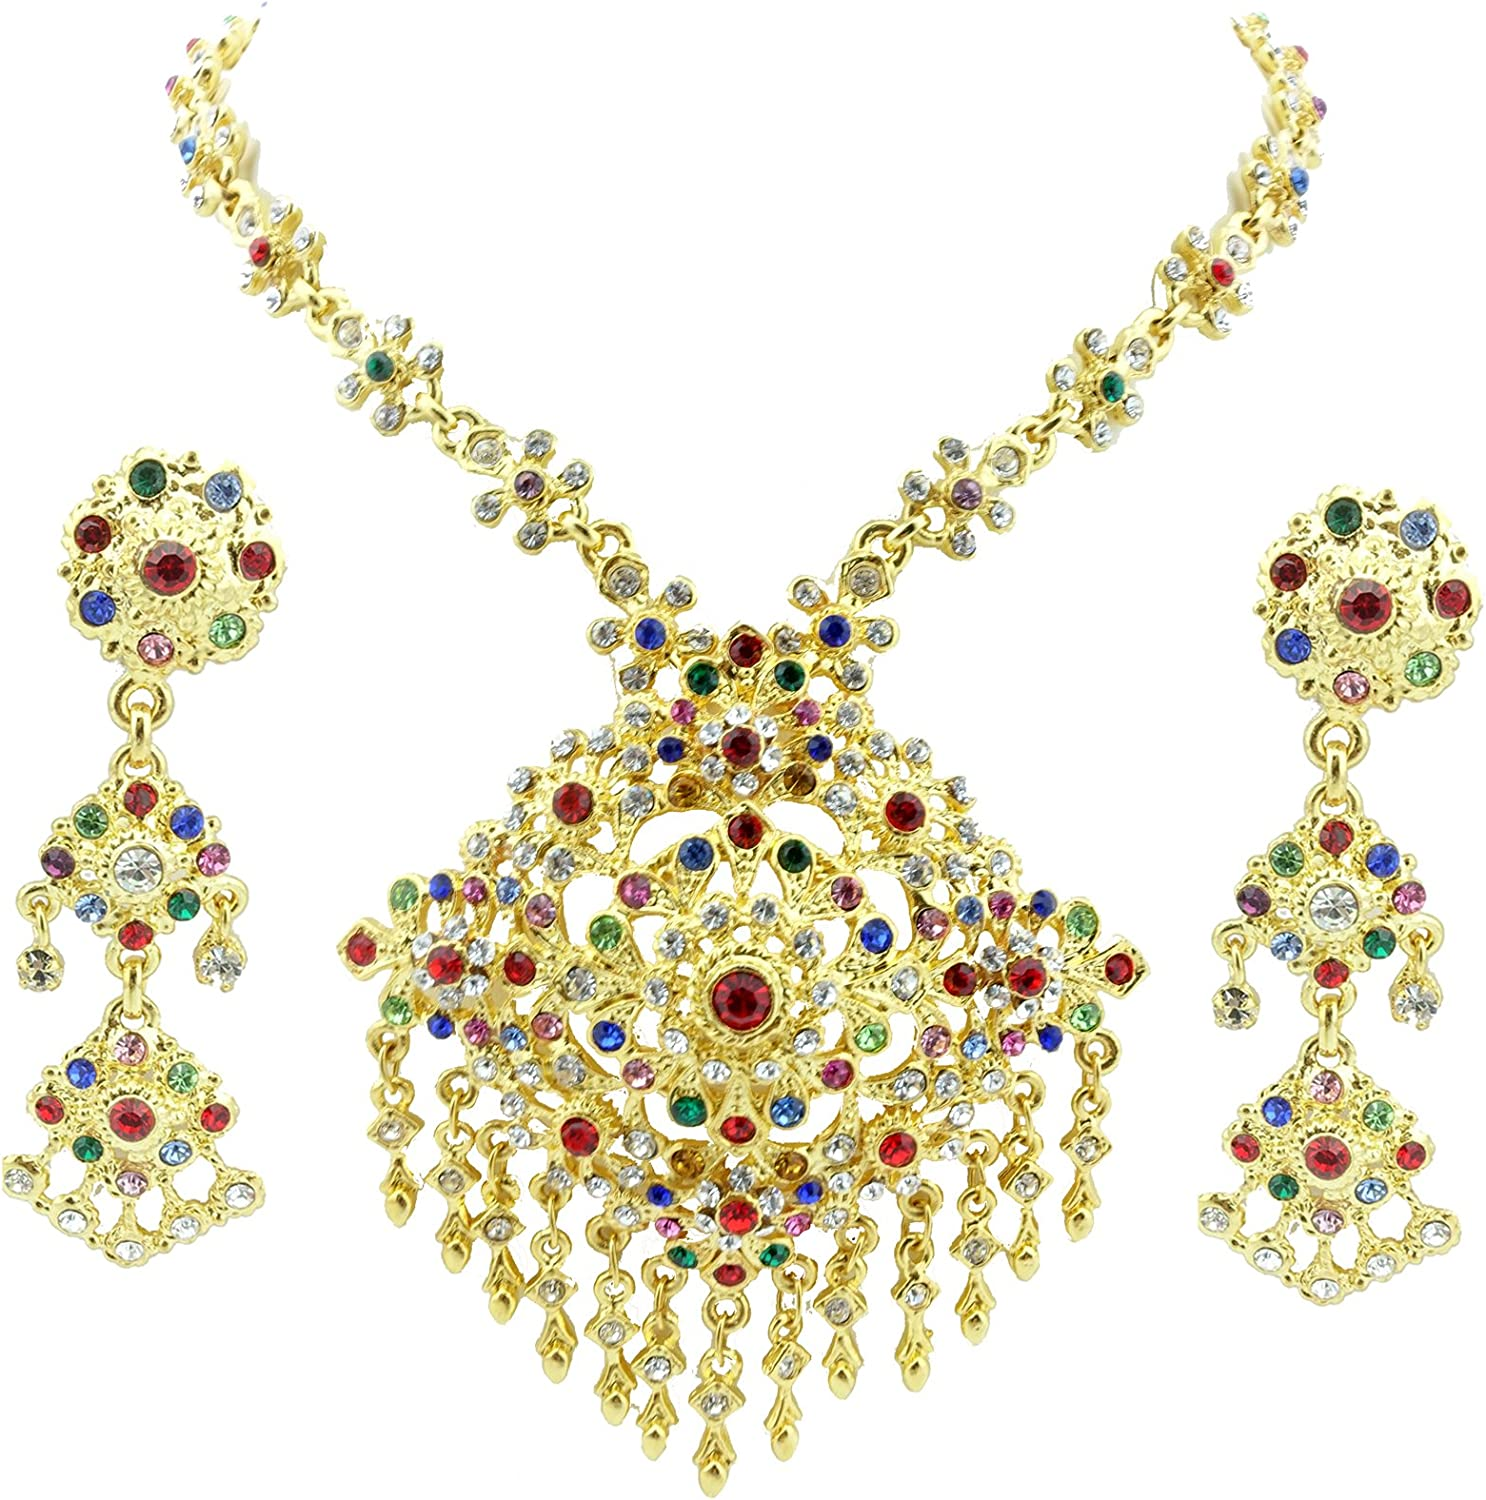 Siwalai Thai Traditional Gold Plated Multicolor Crystals Necklace Earrings Jewelry Set 22.5 Inches